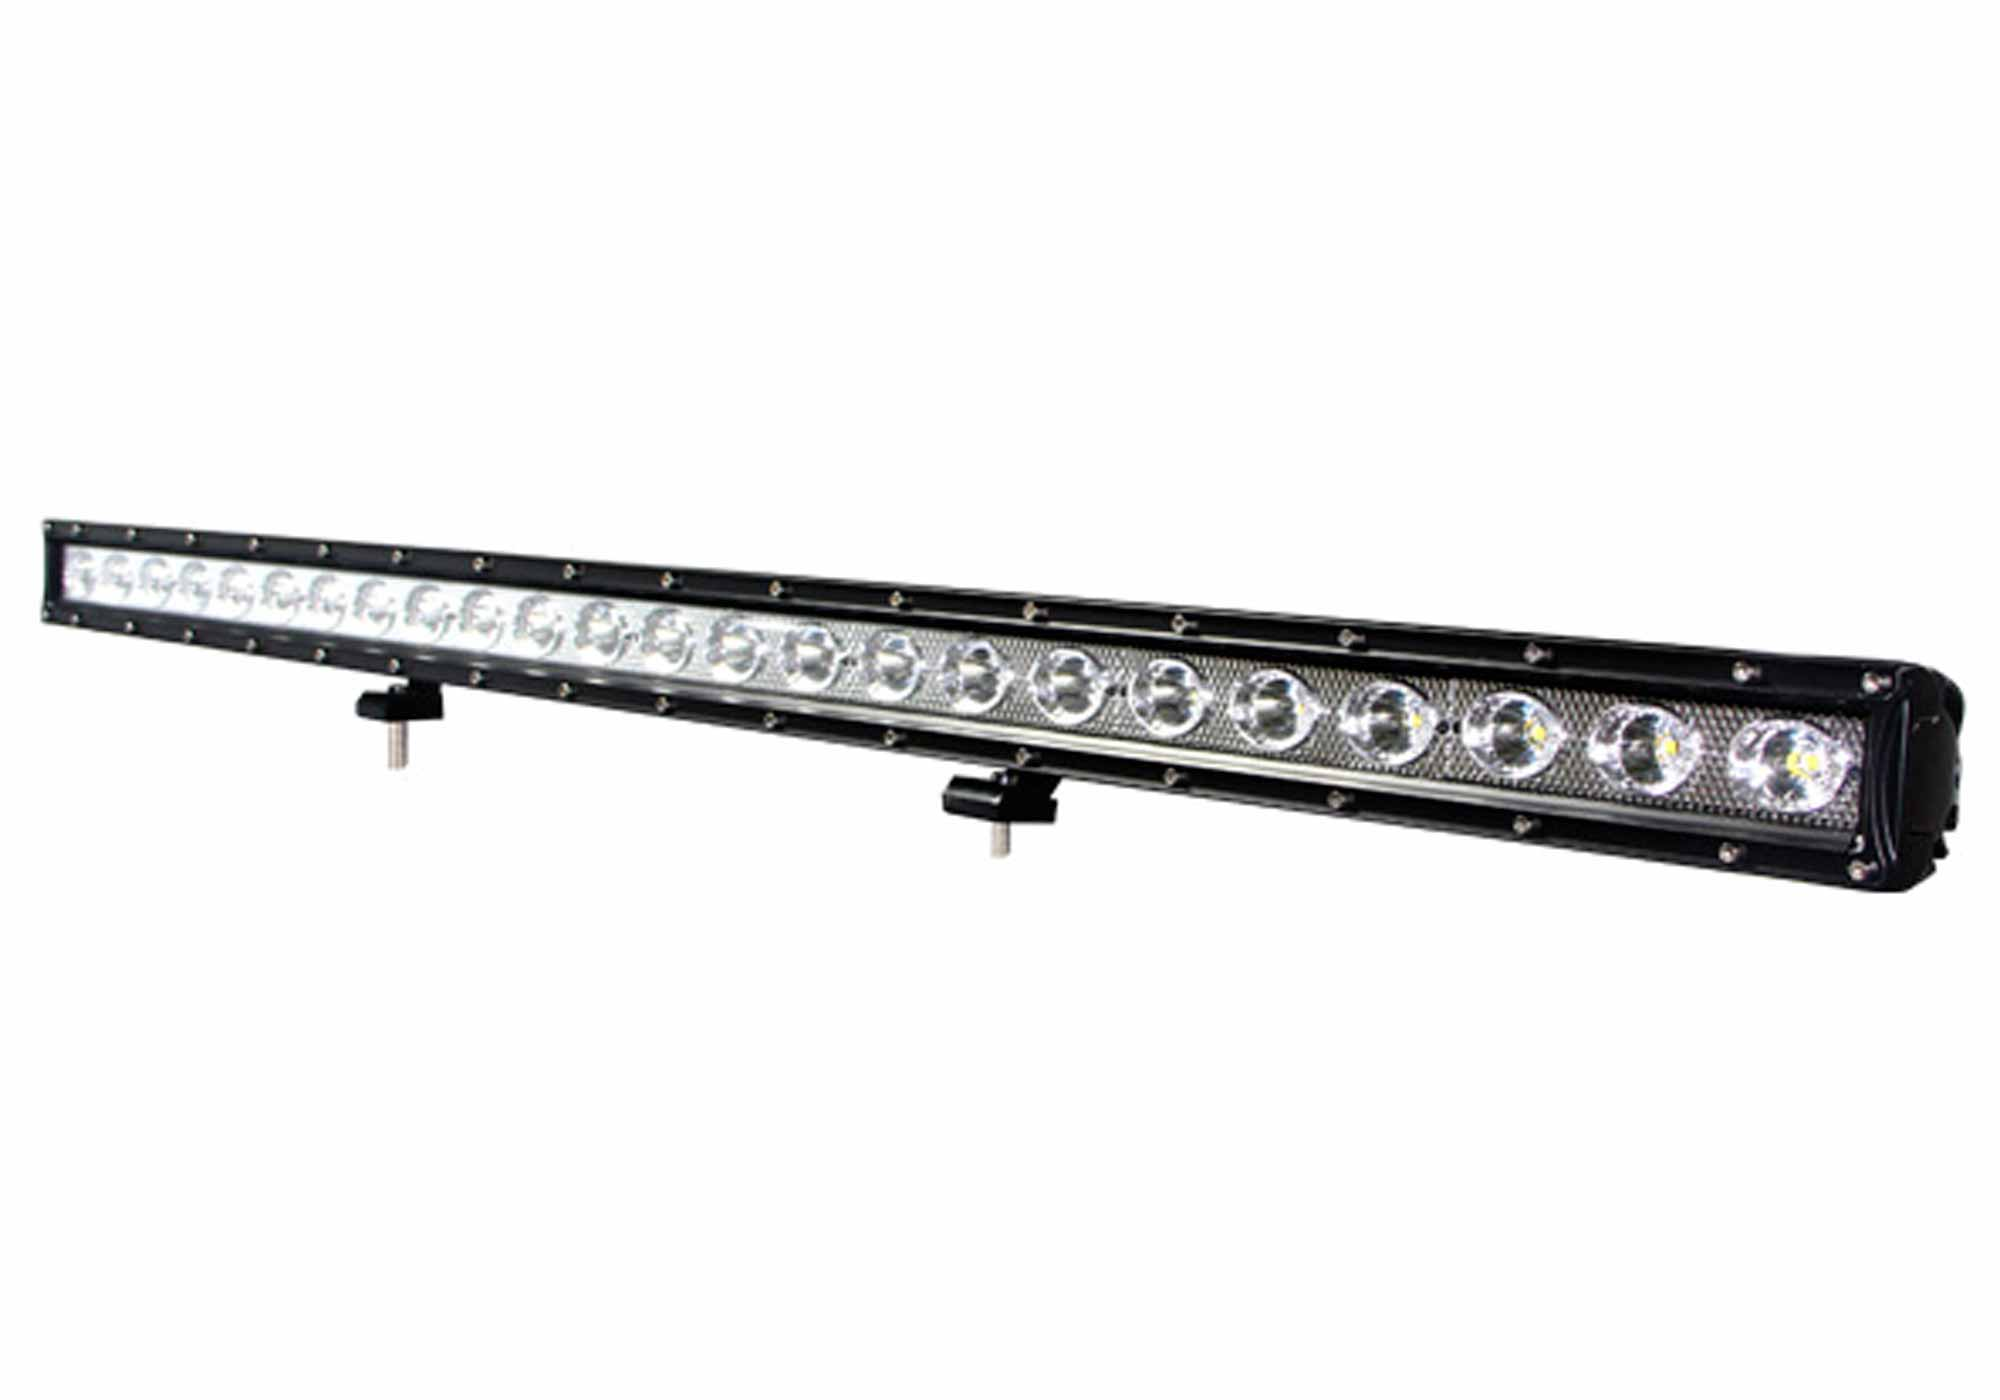 lava series led light bar 40 inch 120 watt combo tuff led lights. Black Bedroom Furniture Sets. Home Design Ideas